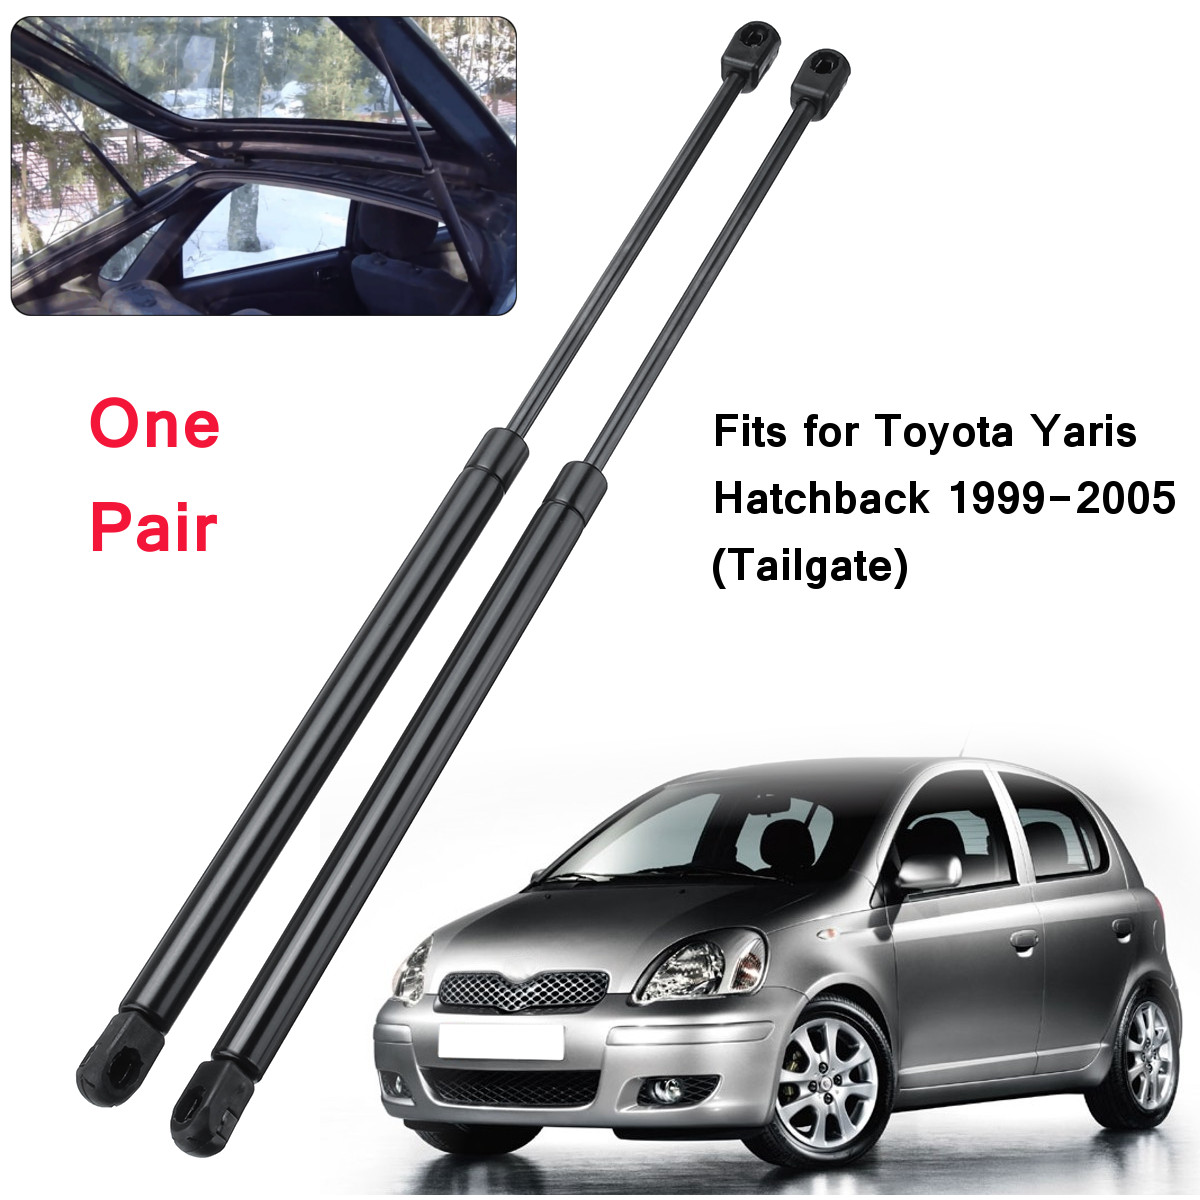 FOR TOYOTA YARIS HATCHBACK 2005-2011 REAR TAILGATE BOOT TRUNK GAS STRUTS SUPPORT